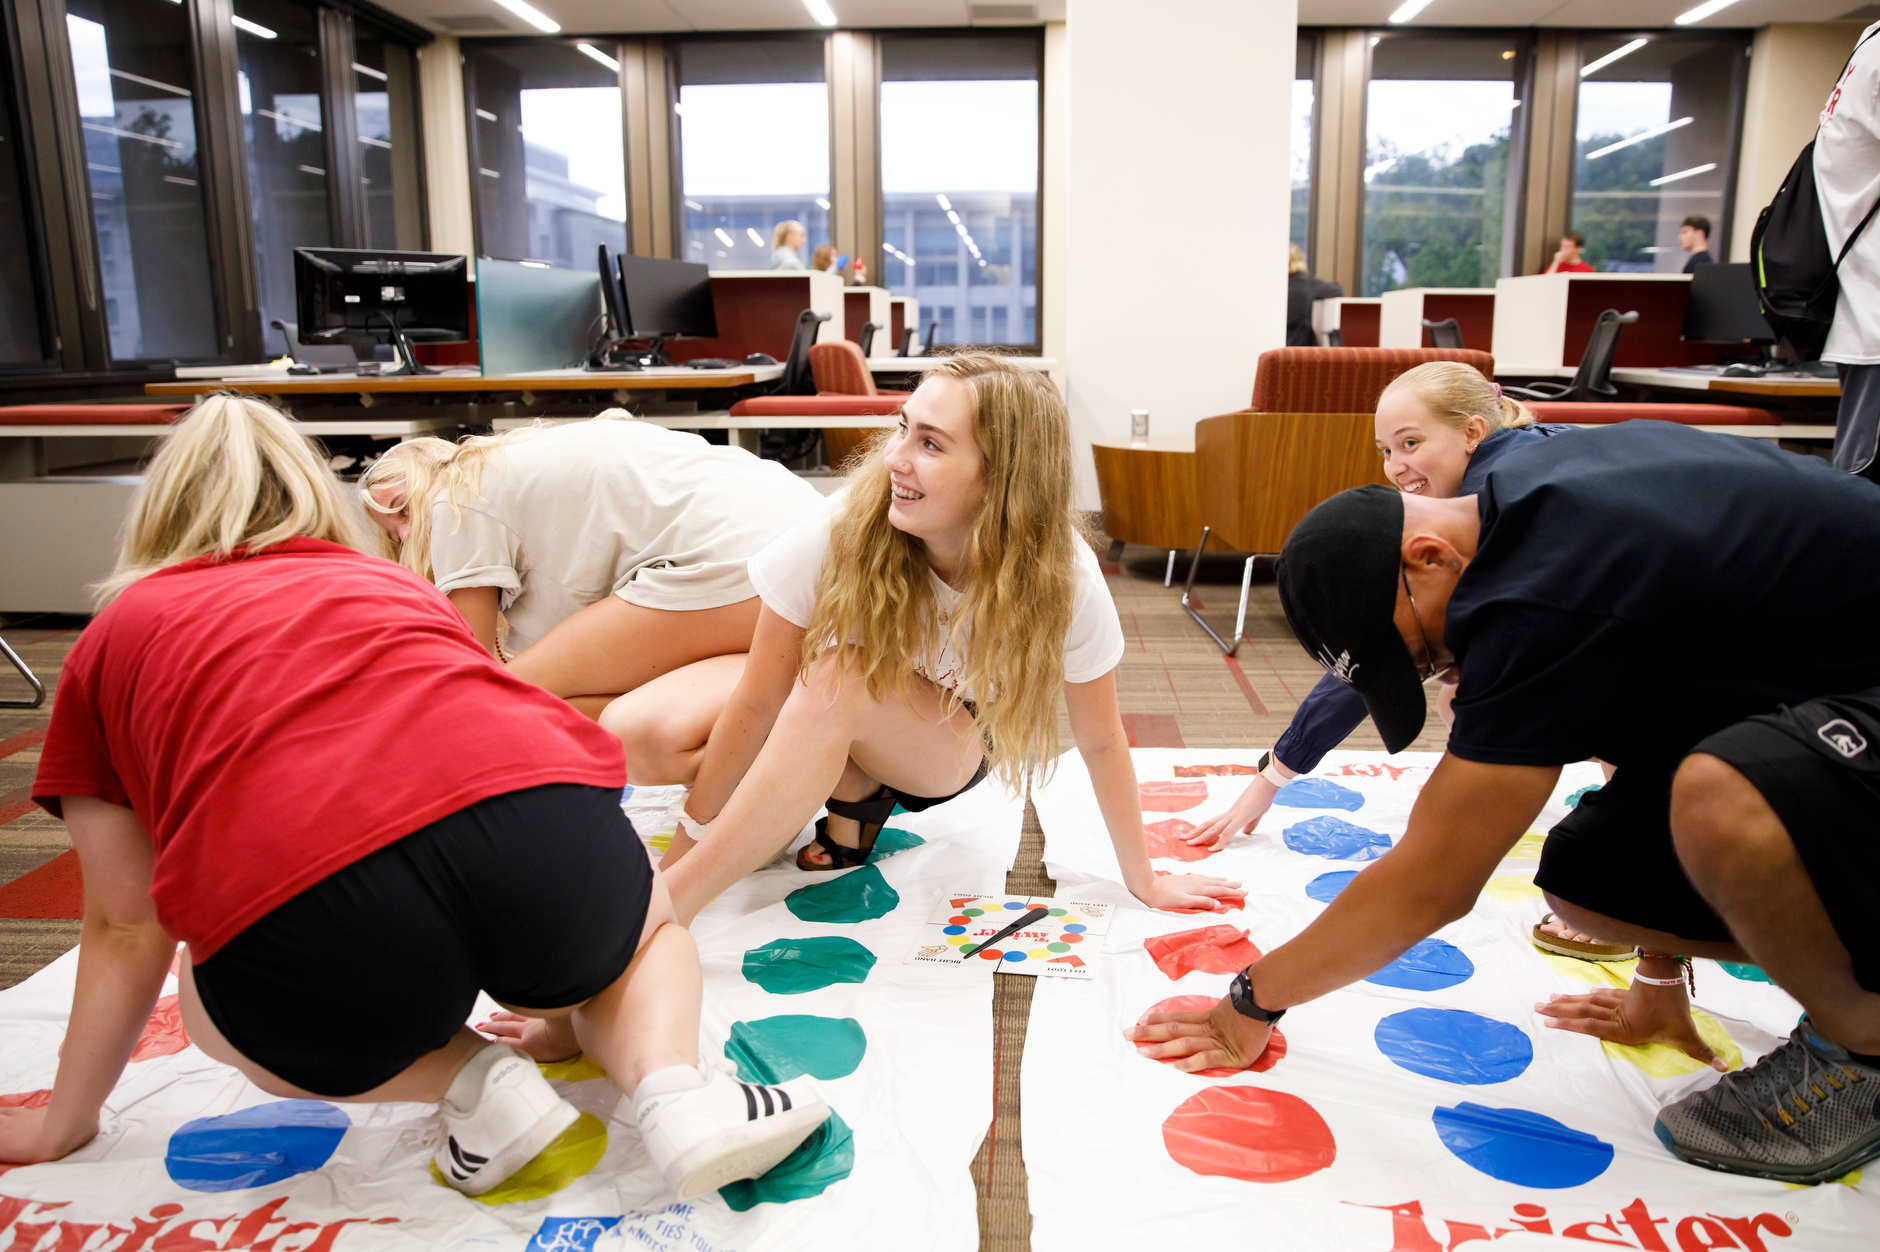 Students play a game of Twister during the Herman B House Party in the Wells Library at IU Bloomington on Thursday, Aug. 22, 2019. (James Brosher/Indiana University)